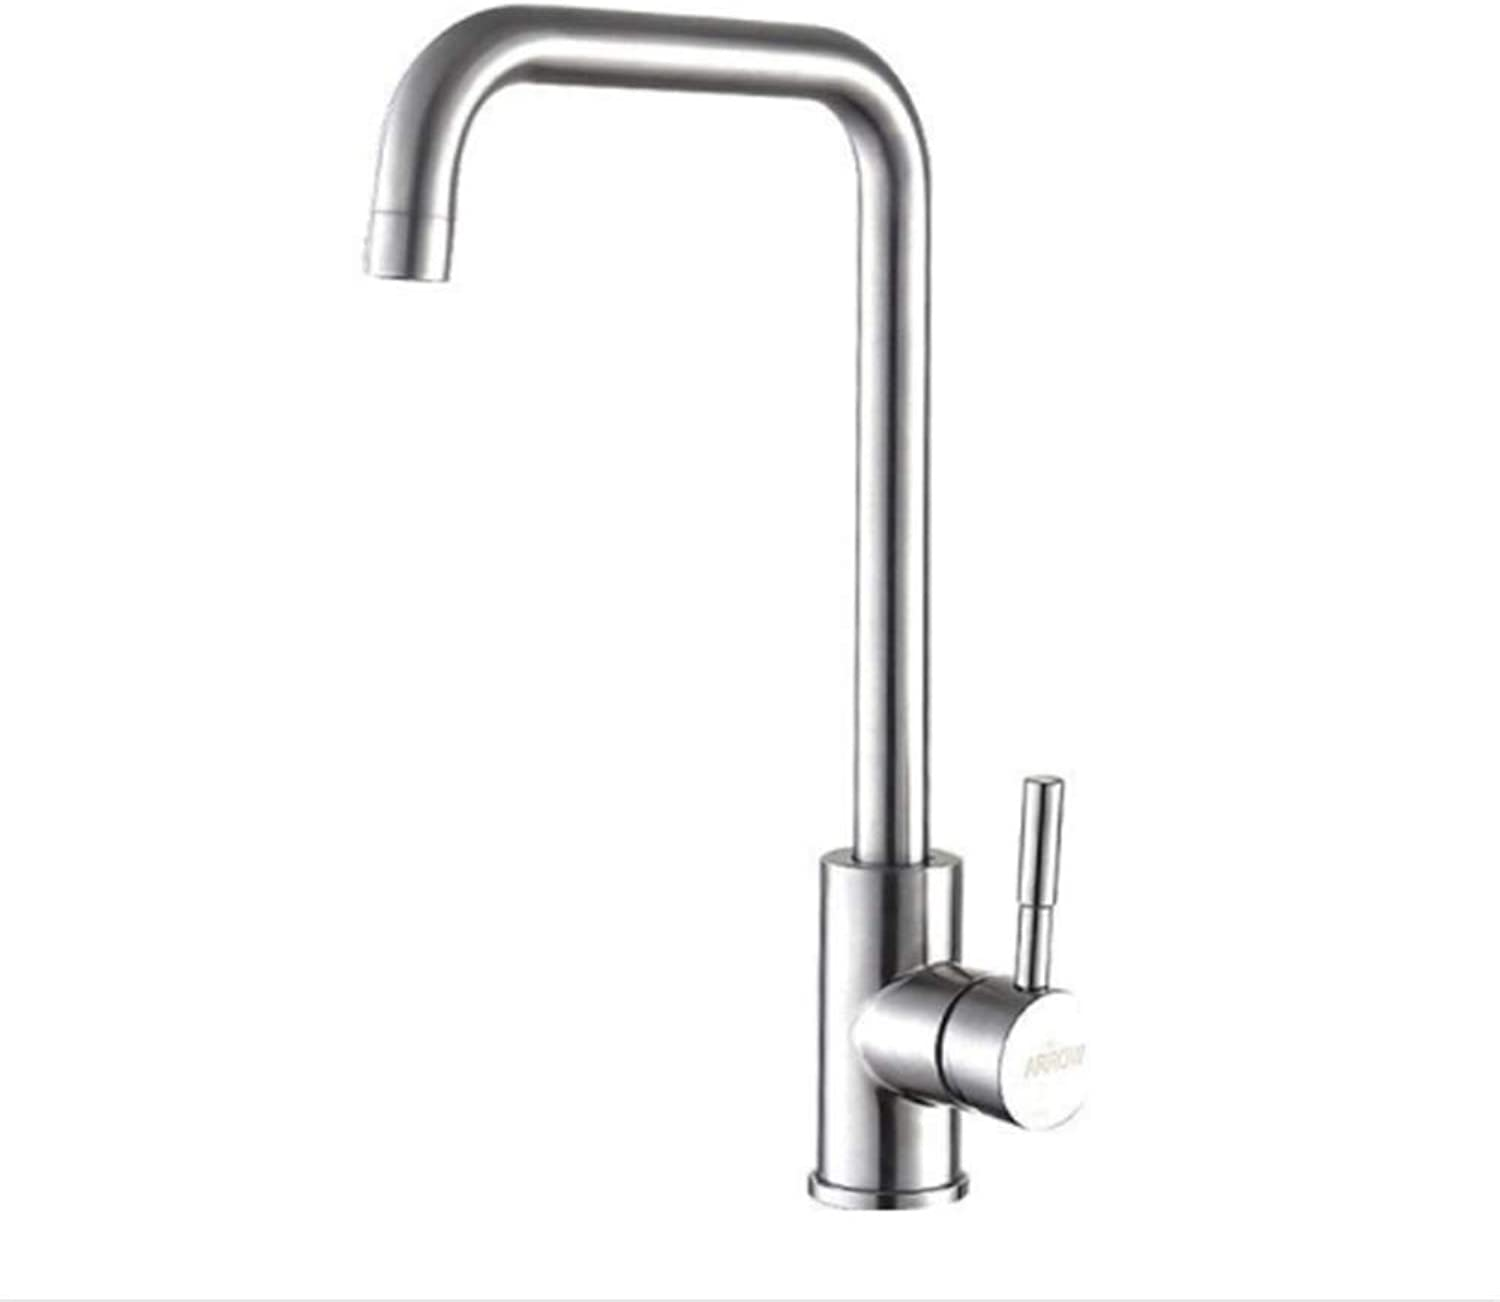 Kitchen Taps Faucet Modern Kitchen Sink Taps Stainless Steelstainless Steel Kitchen Faucet Cold and Hot Water Faucet Dishwash Basin redatable Sink Faucet